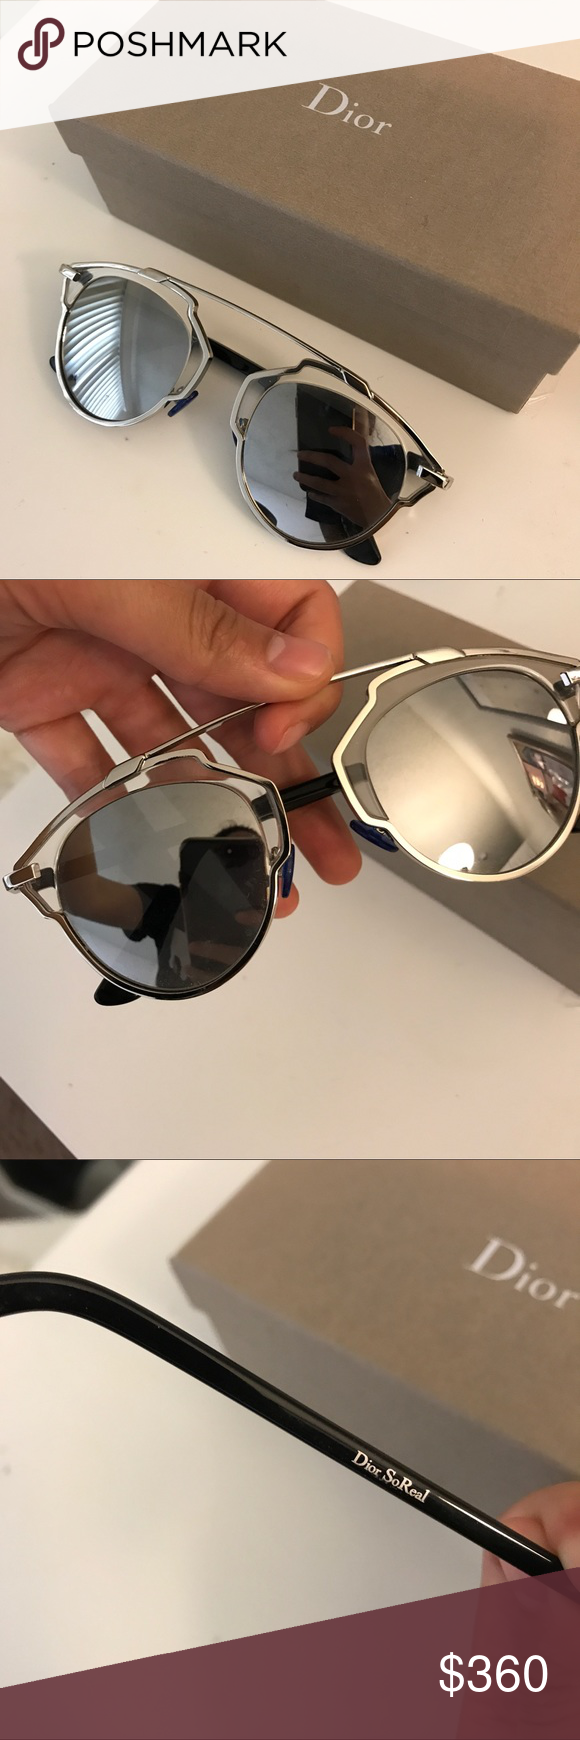 021ef13703f3 Dior sunglasses Dior so real sunglasses silver Christian Dior Accessories  Sunglasses